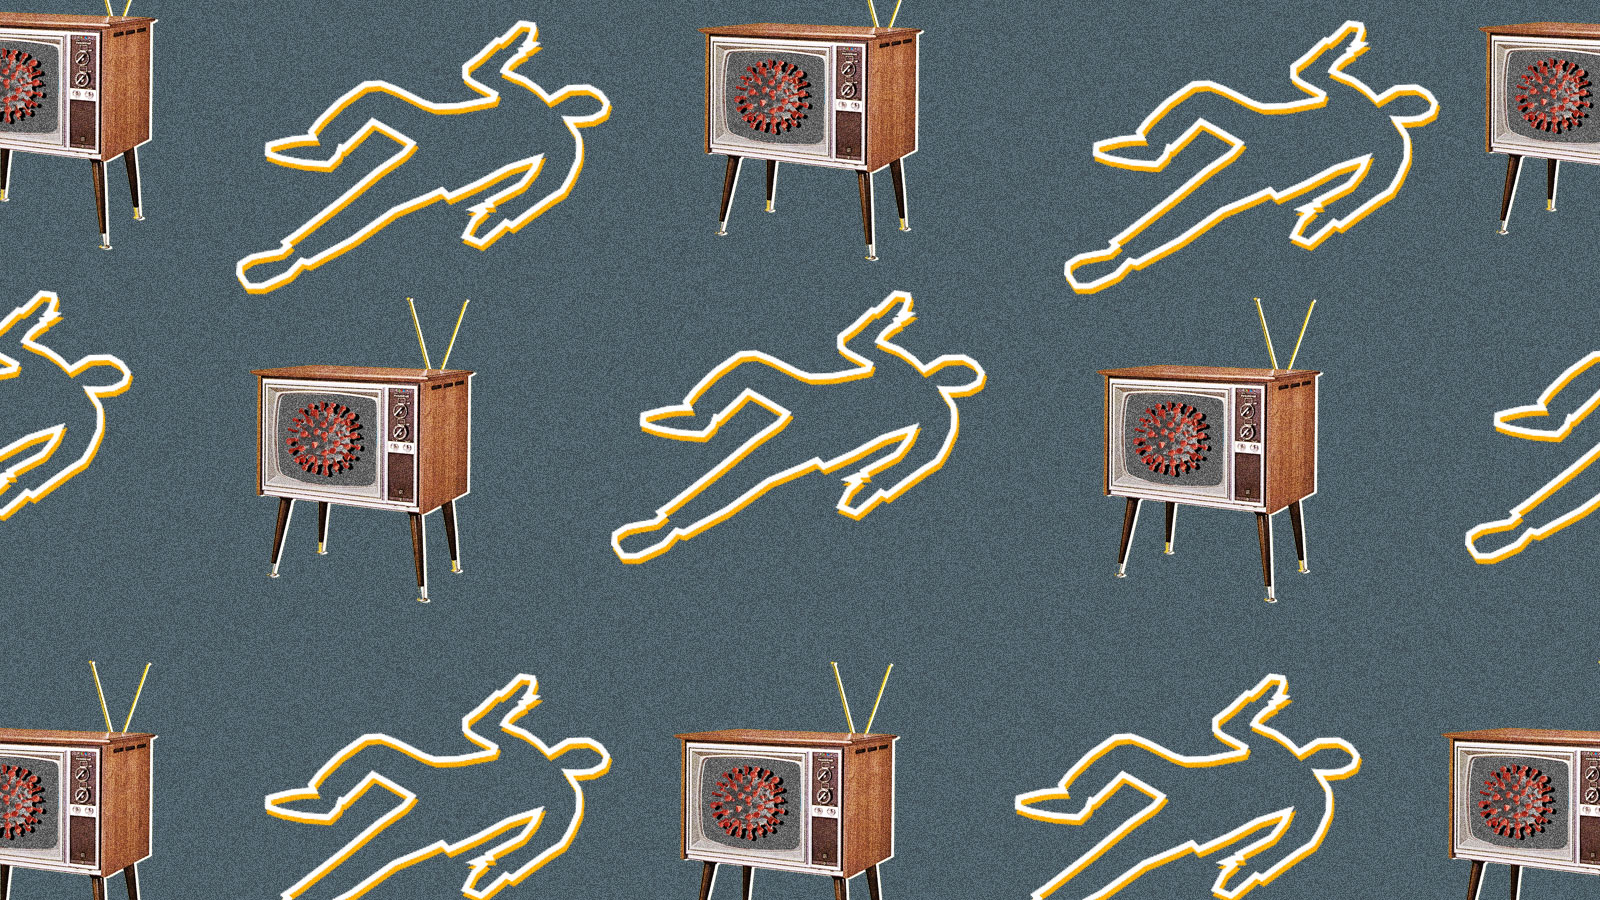 A repeating pattern of body outlines and televisions with the coronavirus on the screen